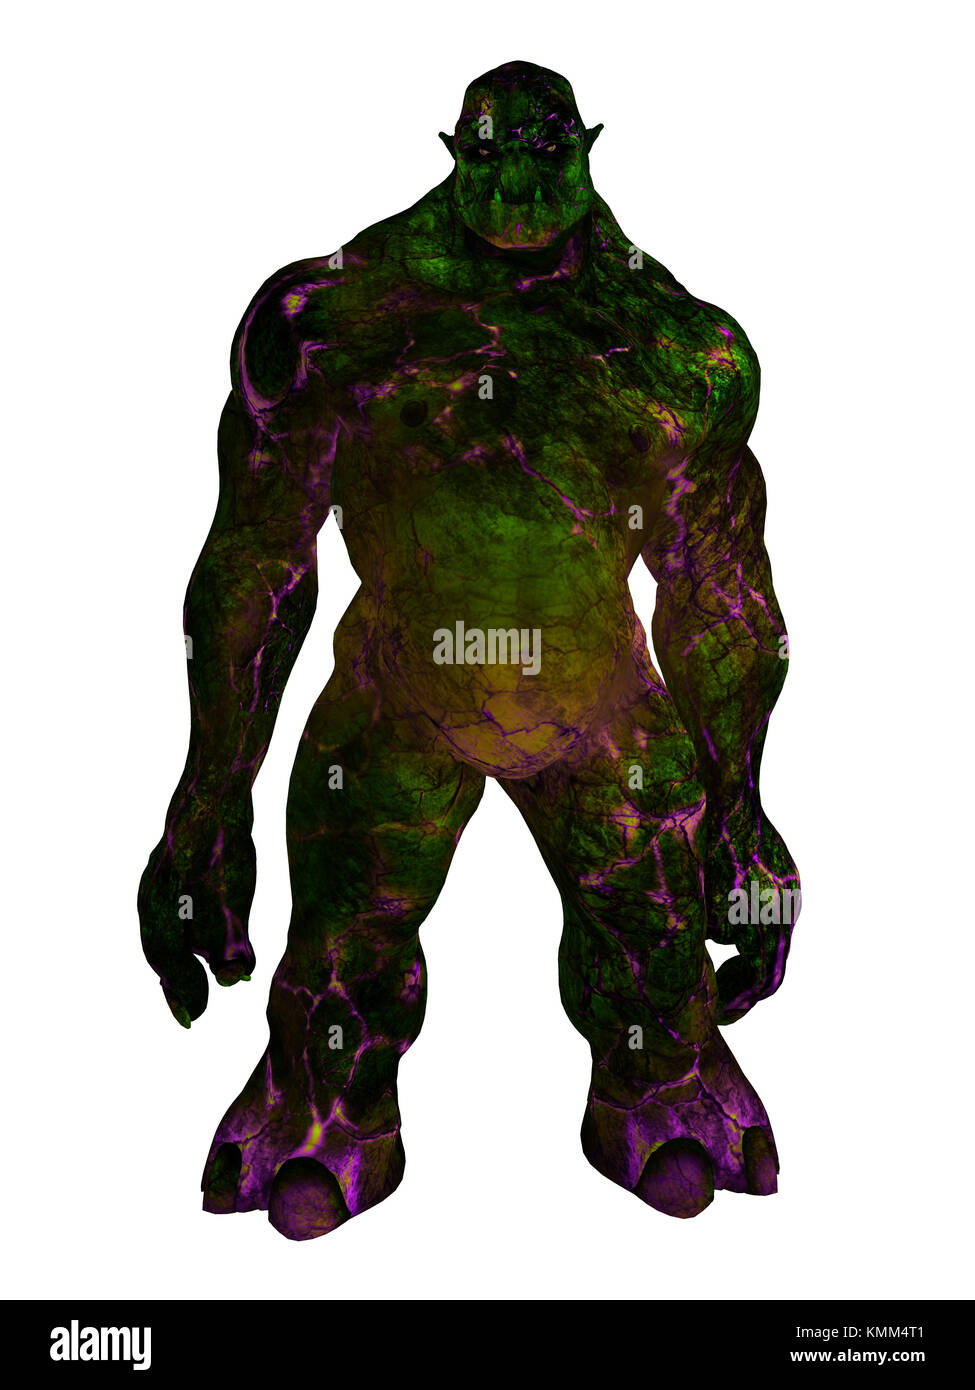 Green Ogre Cut Out Stock Images & Pictures - Alamy